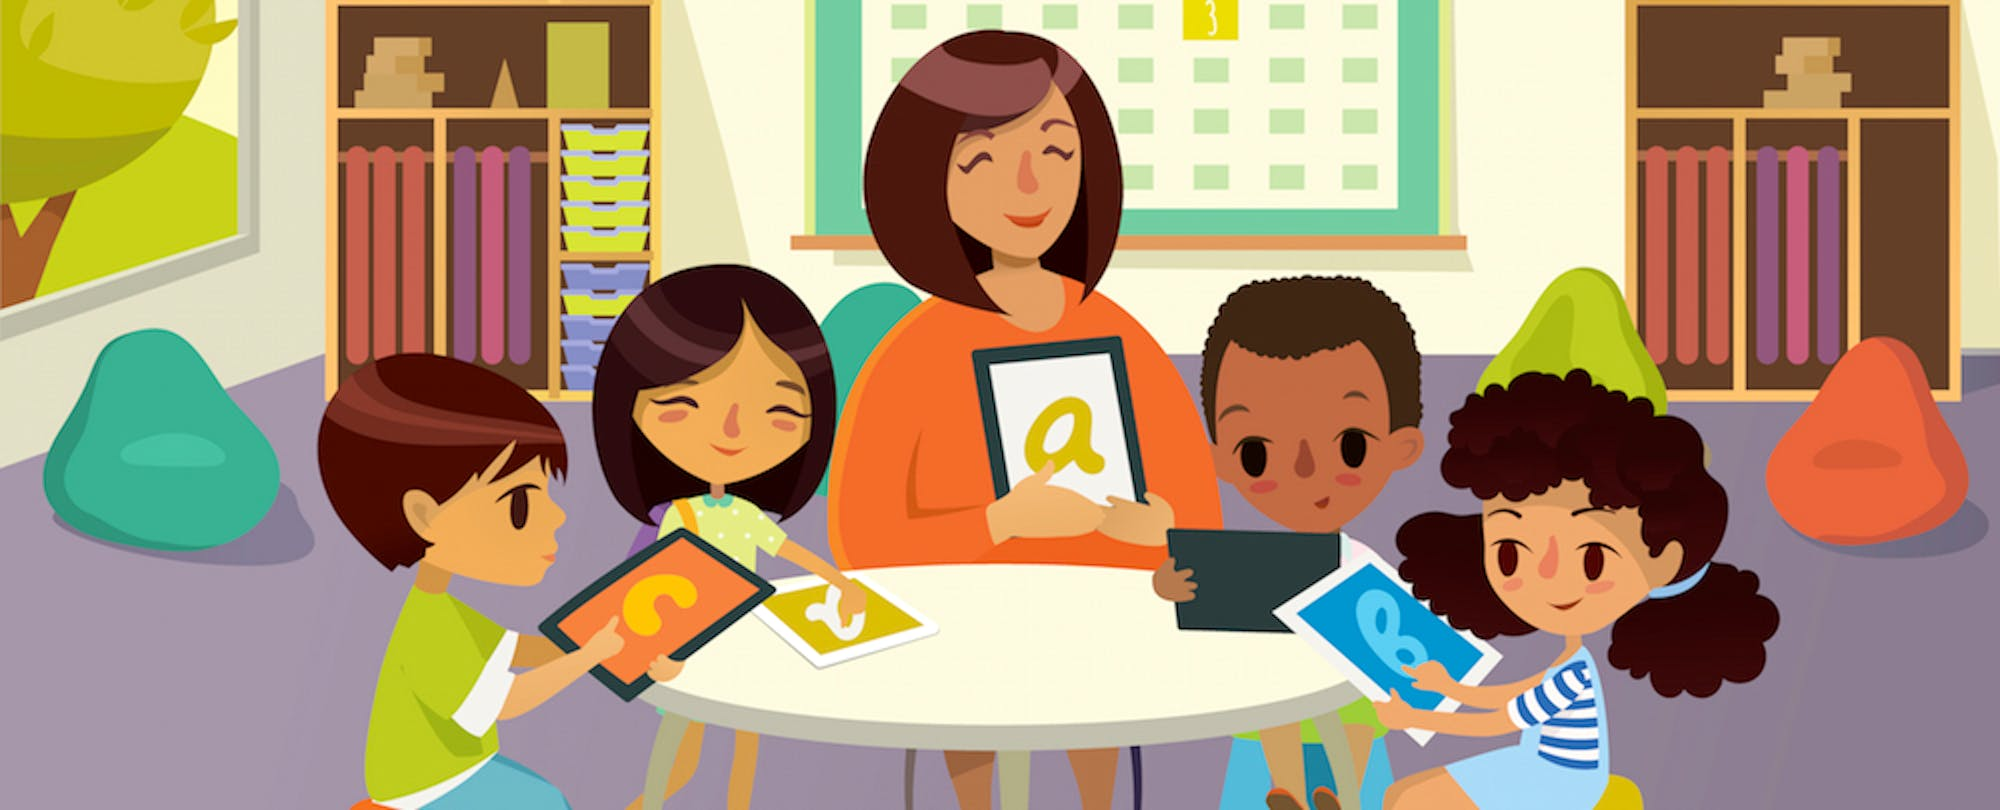 5 Ways Teachers Can Encourage Deeper Learning With Personal Devices